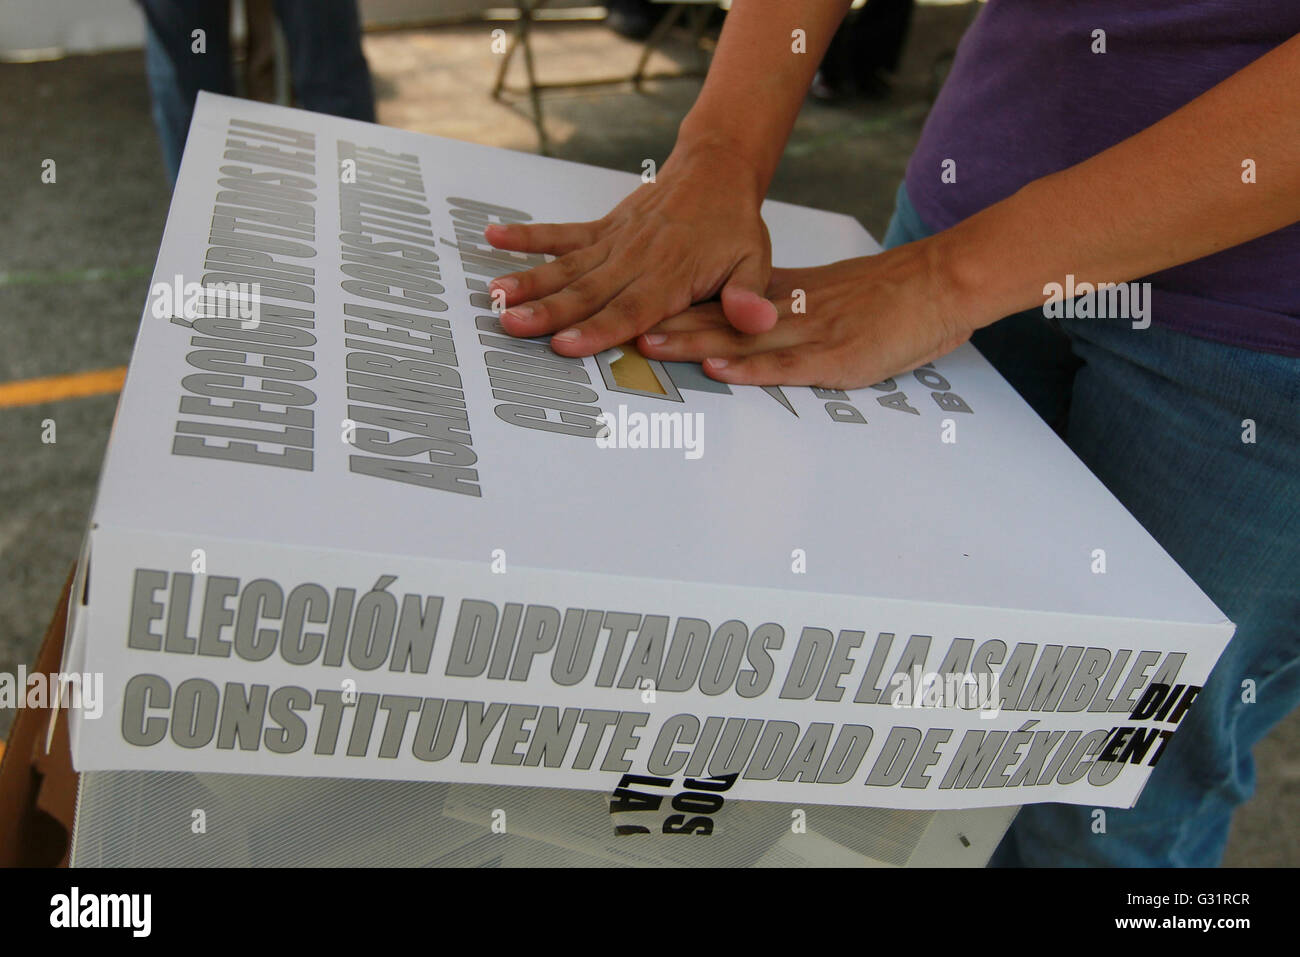 Mexico City, Mexico. 5th June, 2016. An elector casts his vote at a polling station in Mexico City, capital of Mexico, Stock Photo